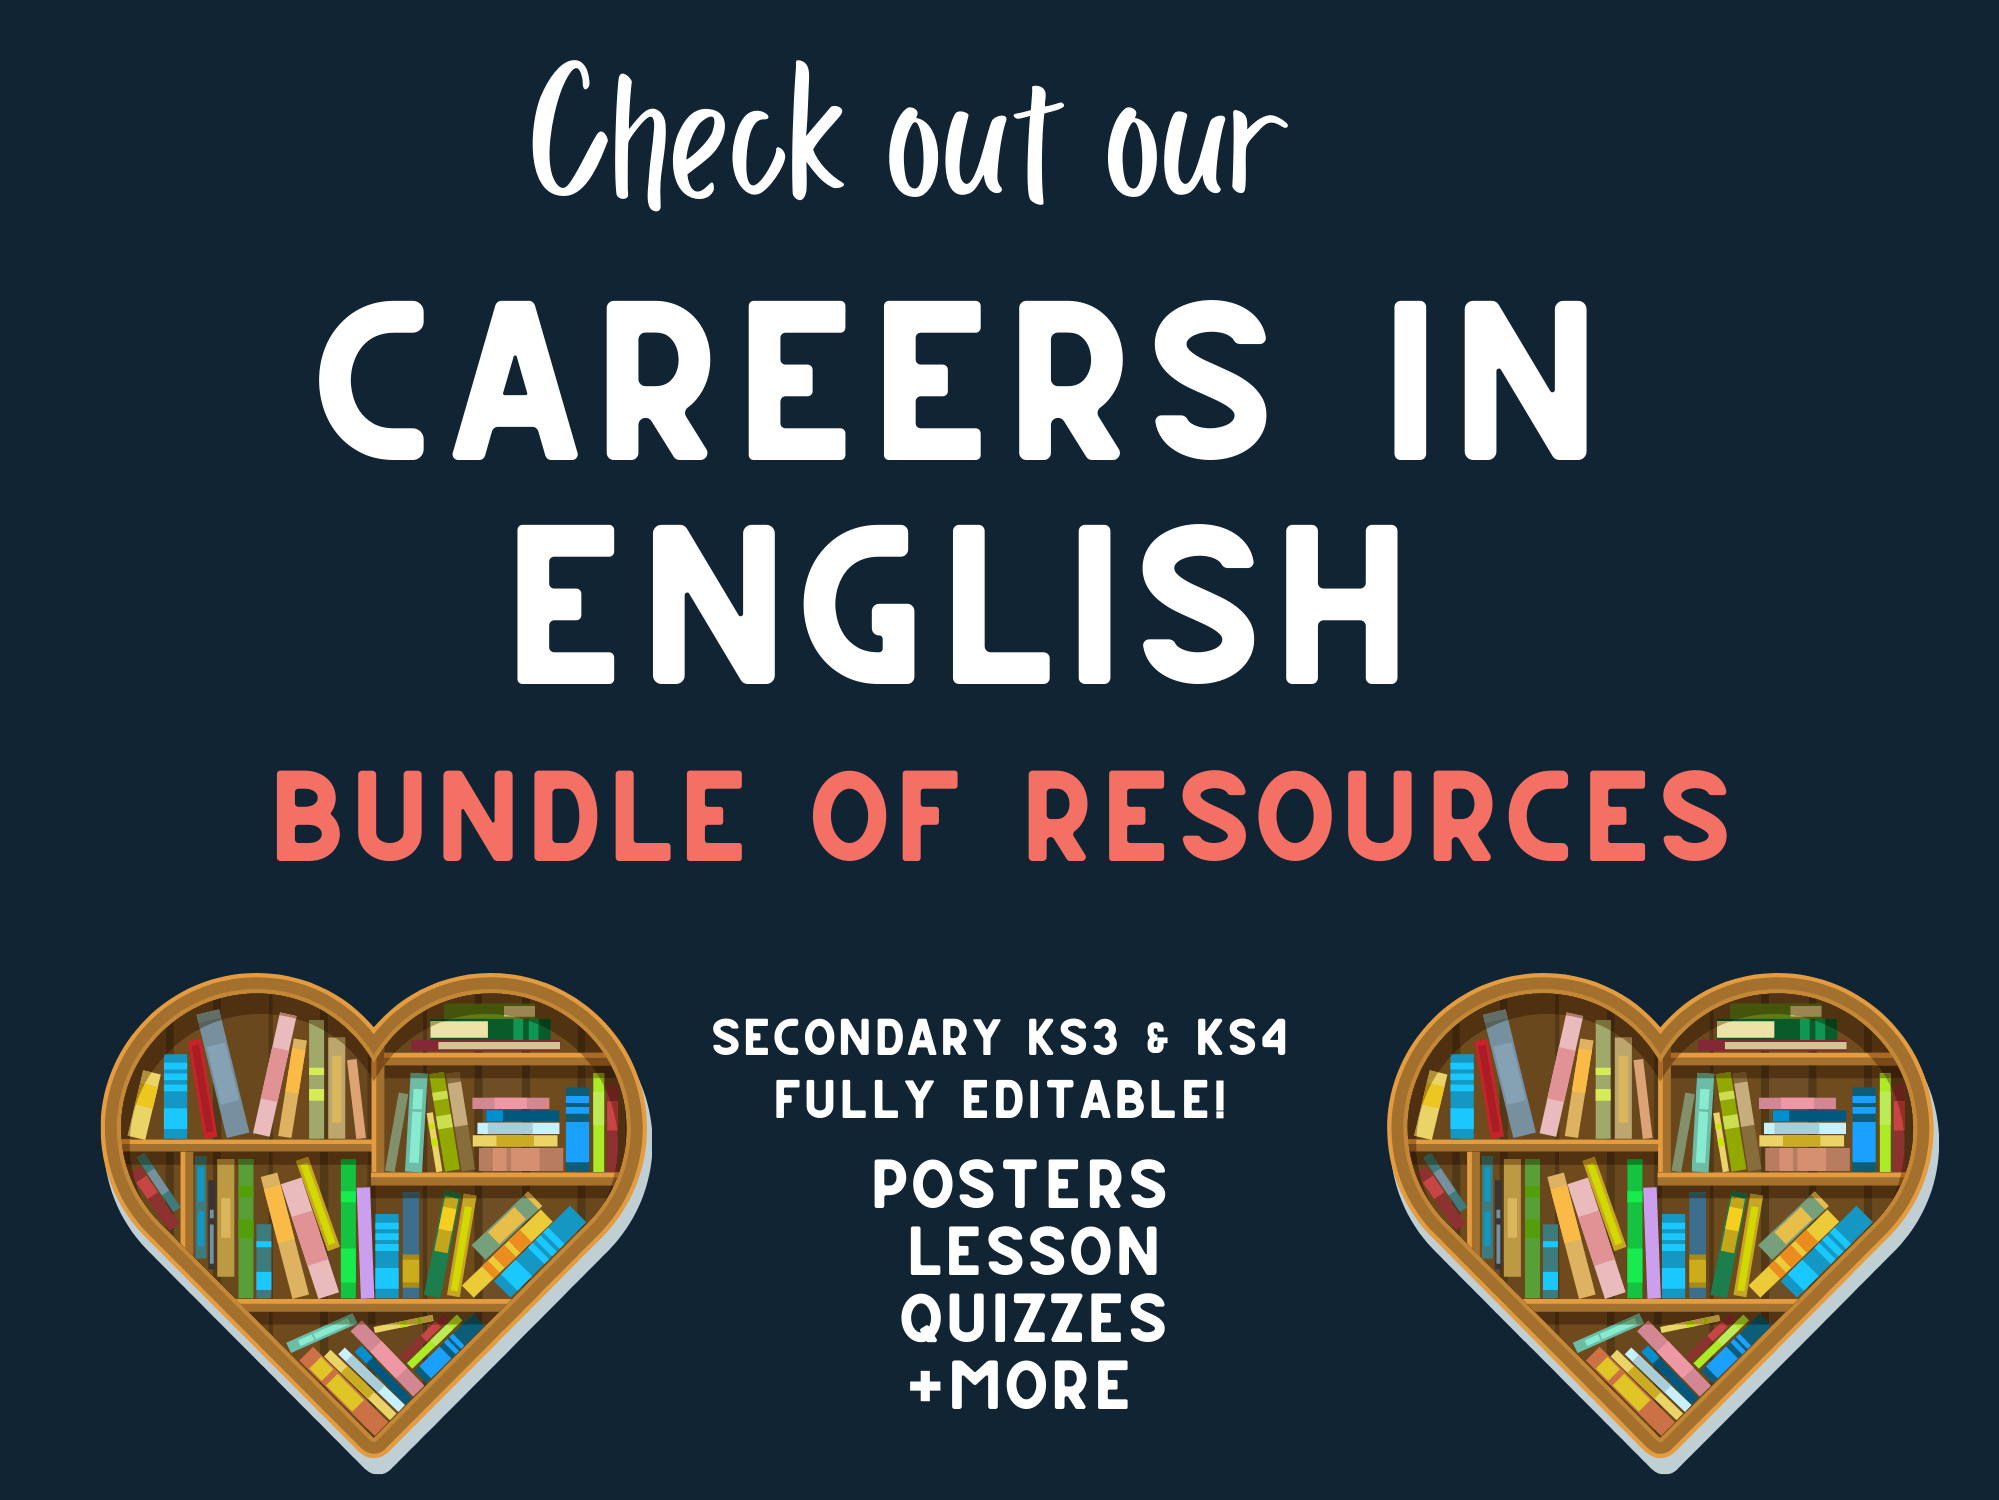 English Careers Resources